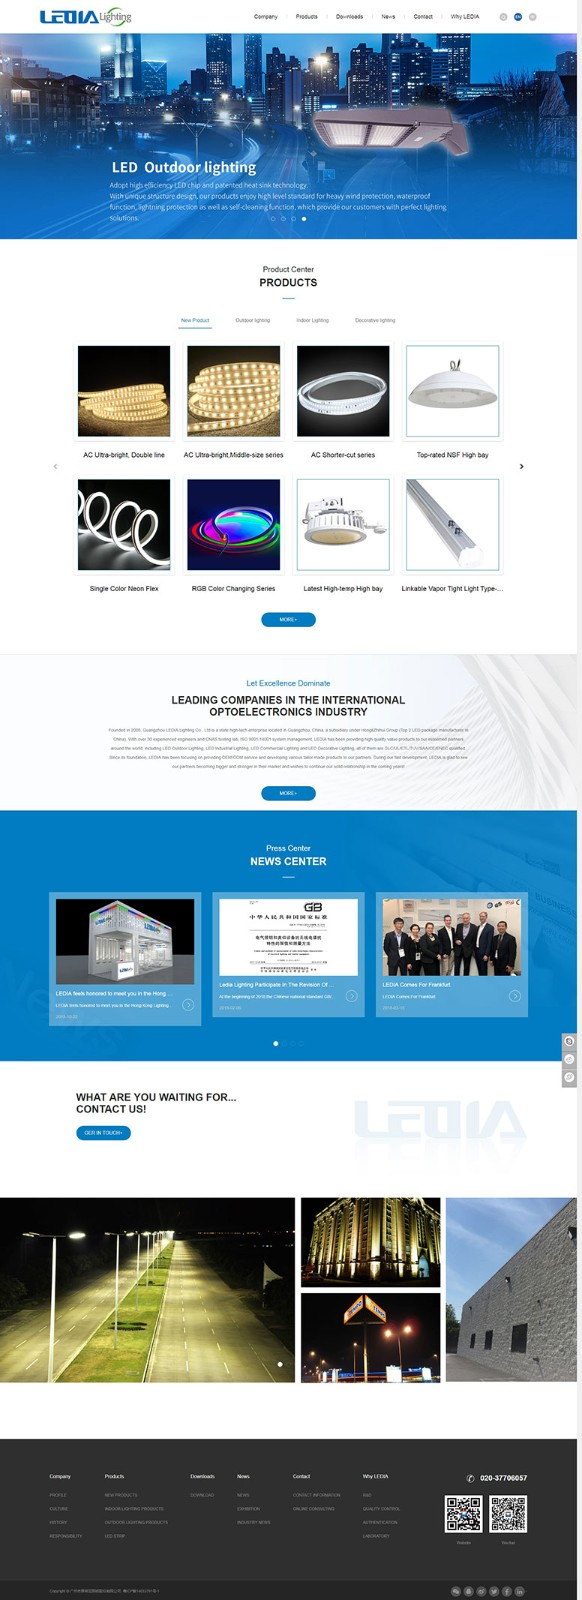 Guangzhou LEDIALIGHTING Co.,Ltd.Guangzhou Ledia Lighting Co., Ltd